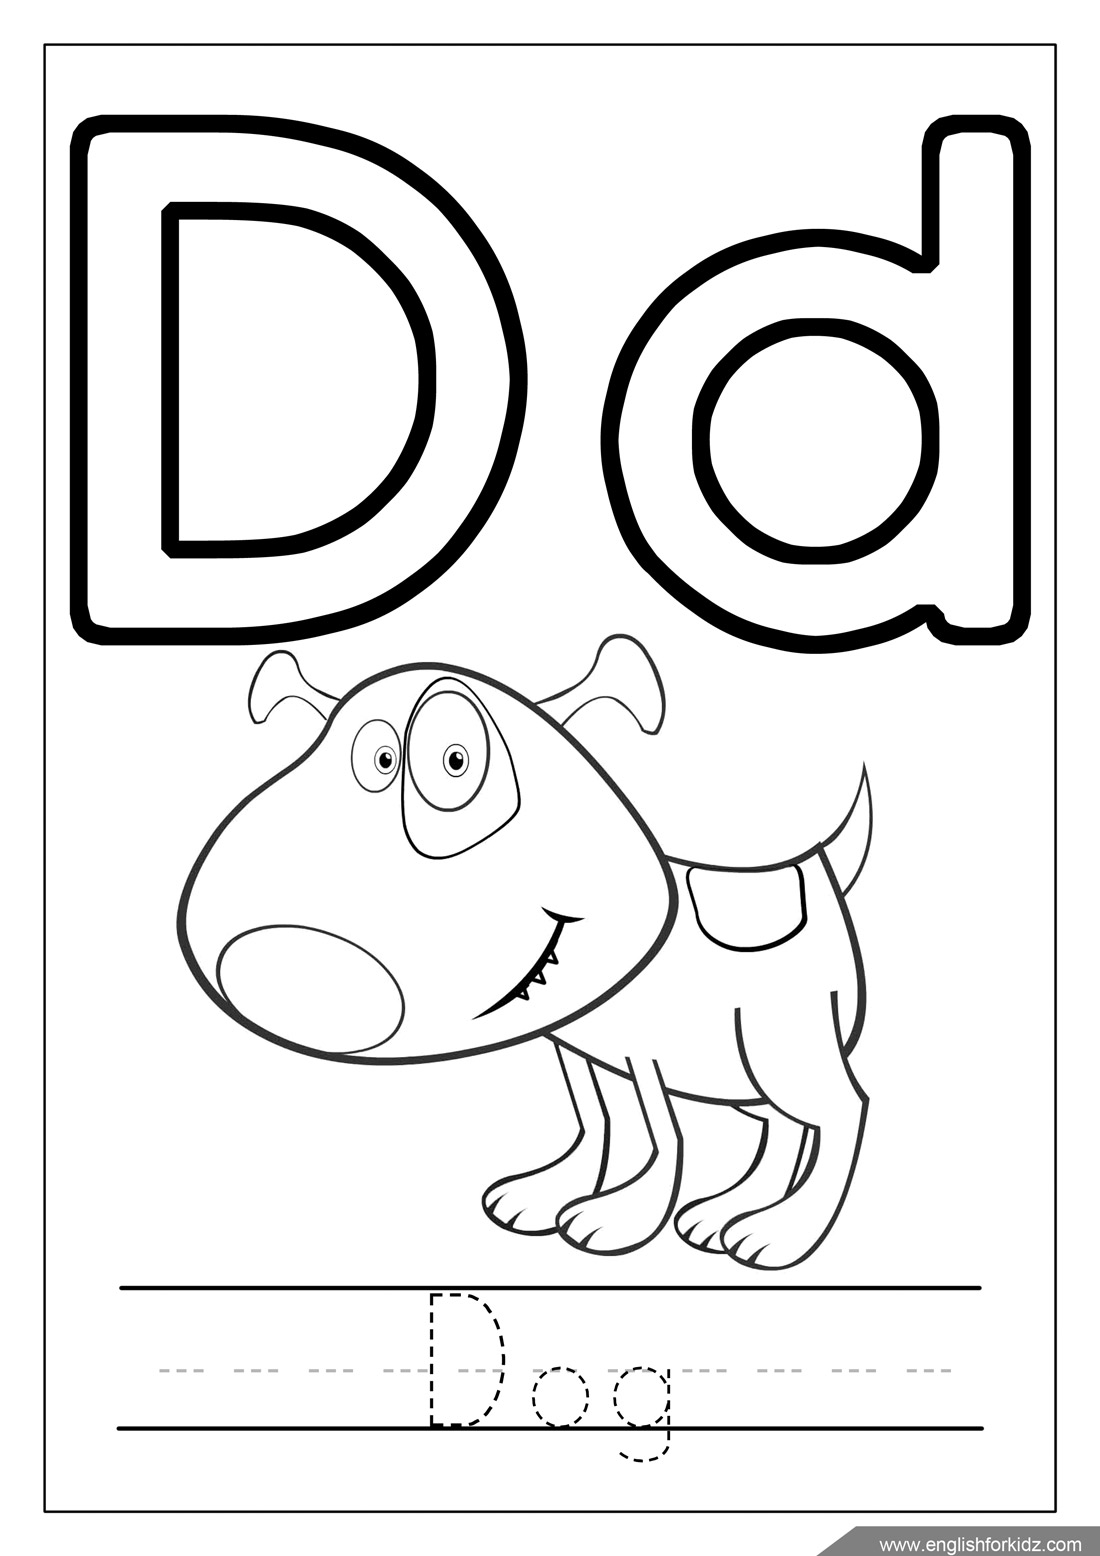 coloring pages letter i fun coloring pages alphabet coloring pages coloring i pages letter